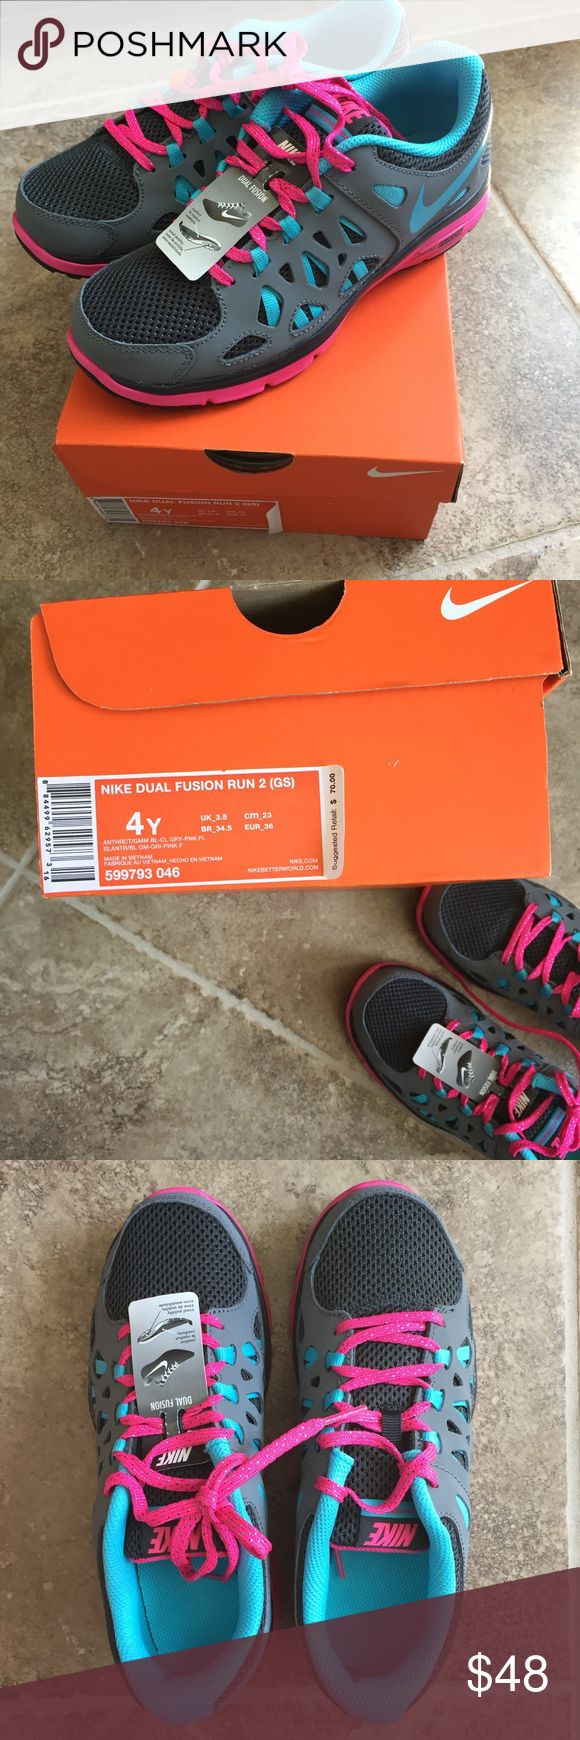 Girl's Nike Dual Fusion Run 2 Brand new girls shoes just in time for back to school! Never been worn! The Dual Fusion makes these really comfortable and for all day wear! Nike Shoes Sneakers